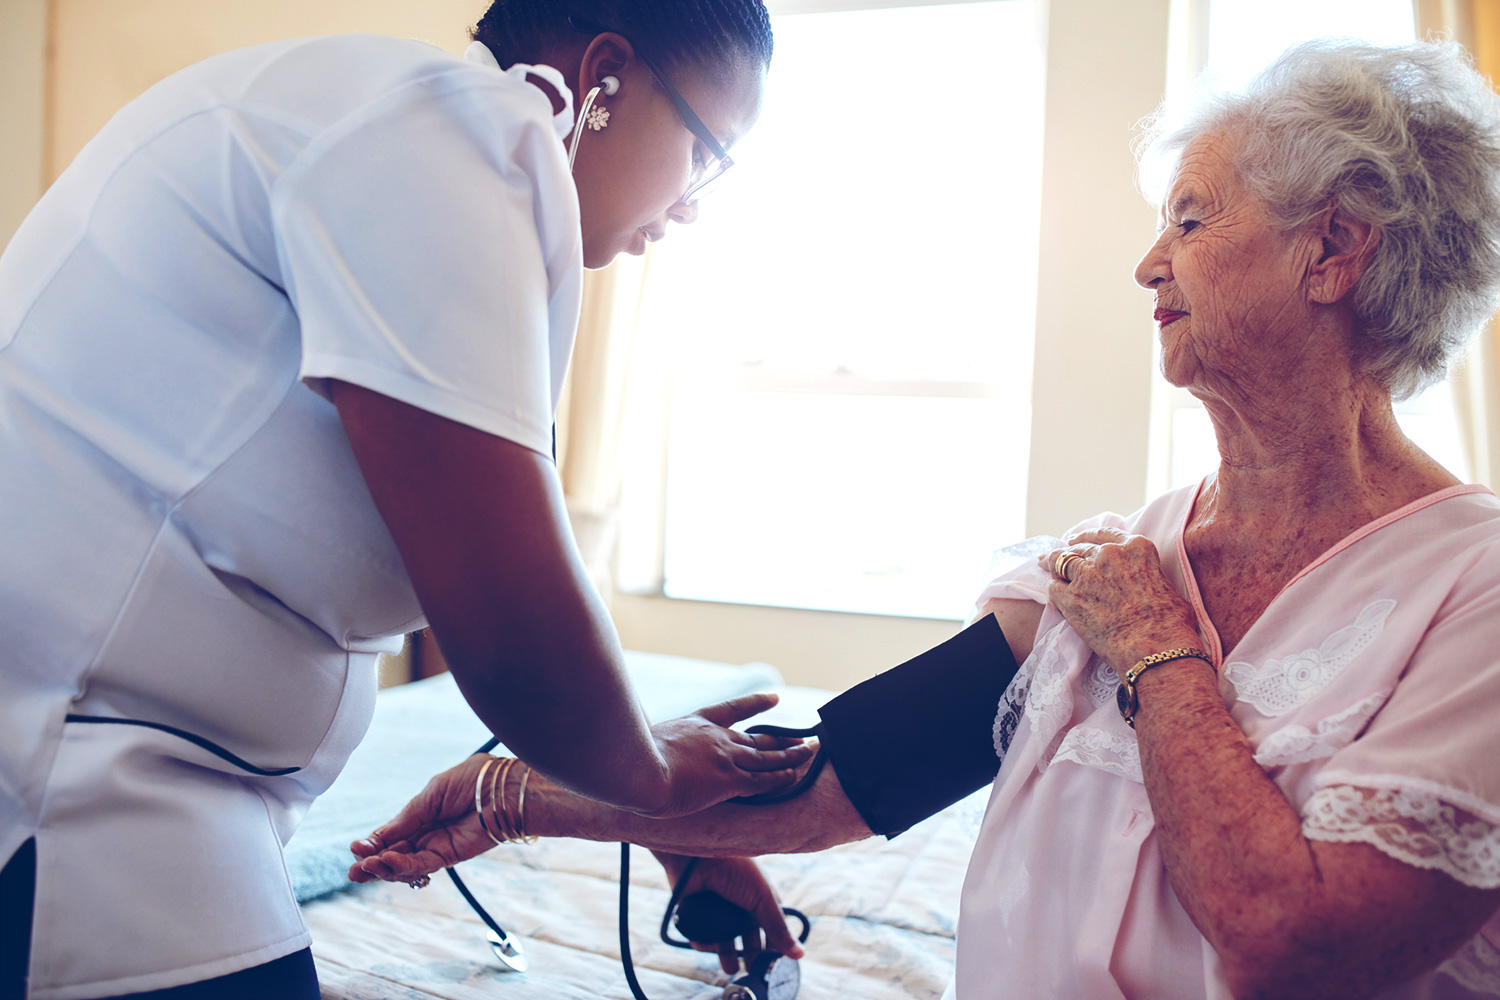 """Nengliang """"Aaron"""" Yao of the School of Medicine's Department of Public Health Sciences said nurse practitioners can fill a gap in the number of health care professionals who provide home visits – if state regulations enable them to do so."""